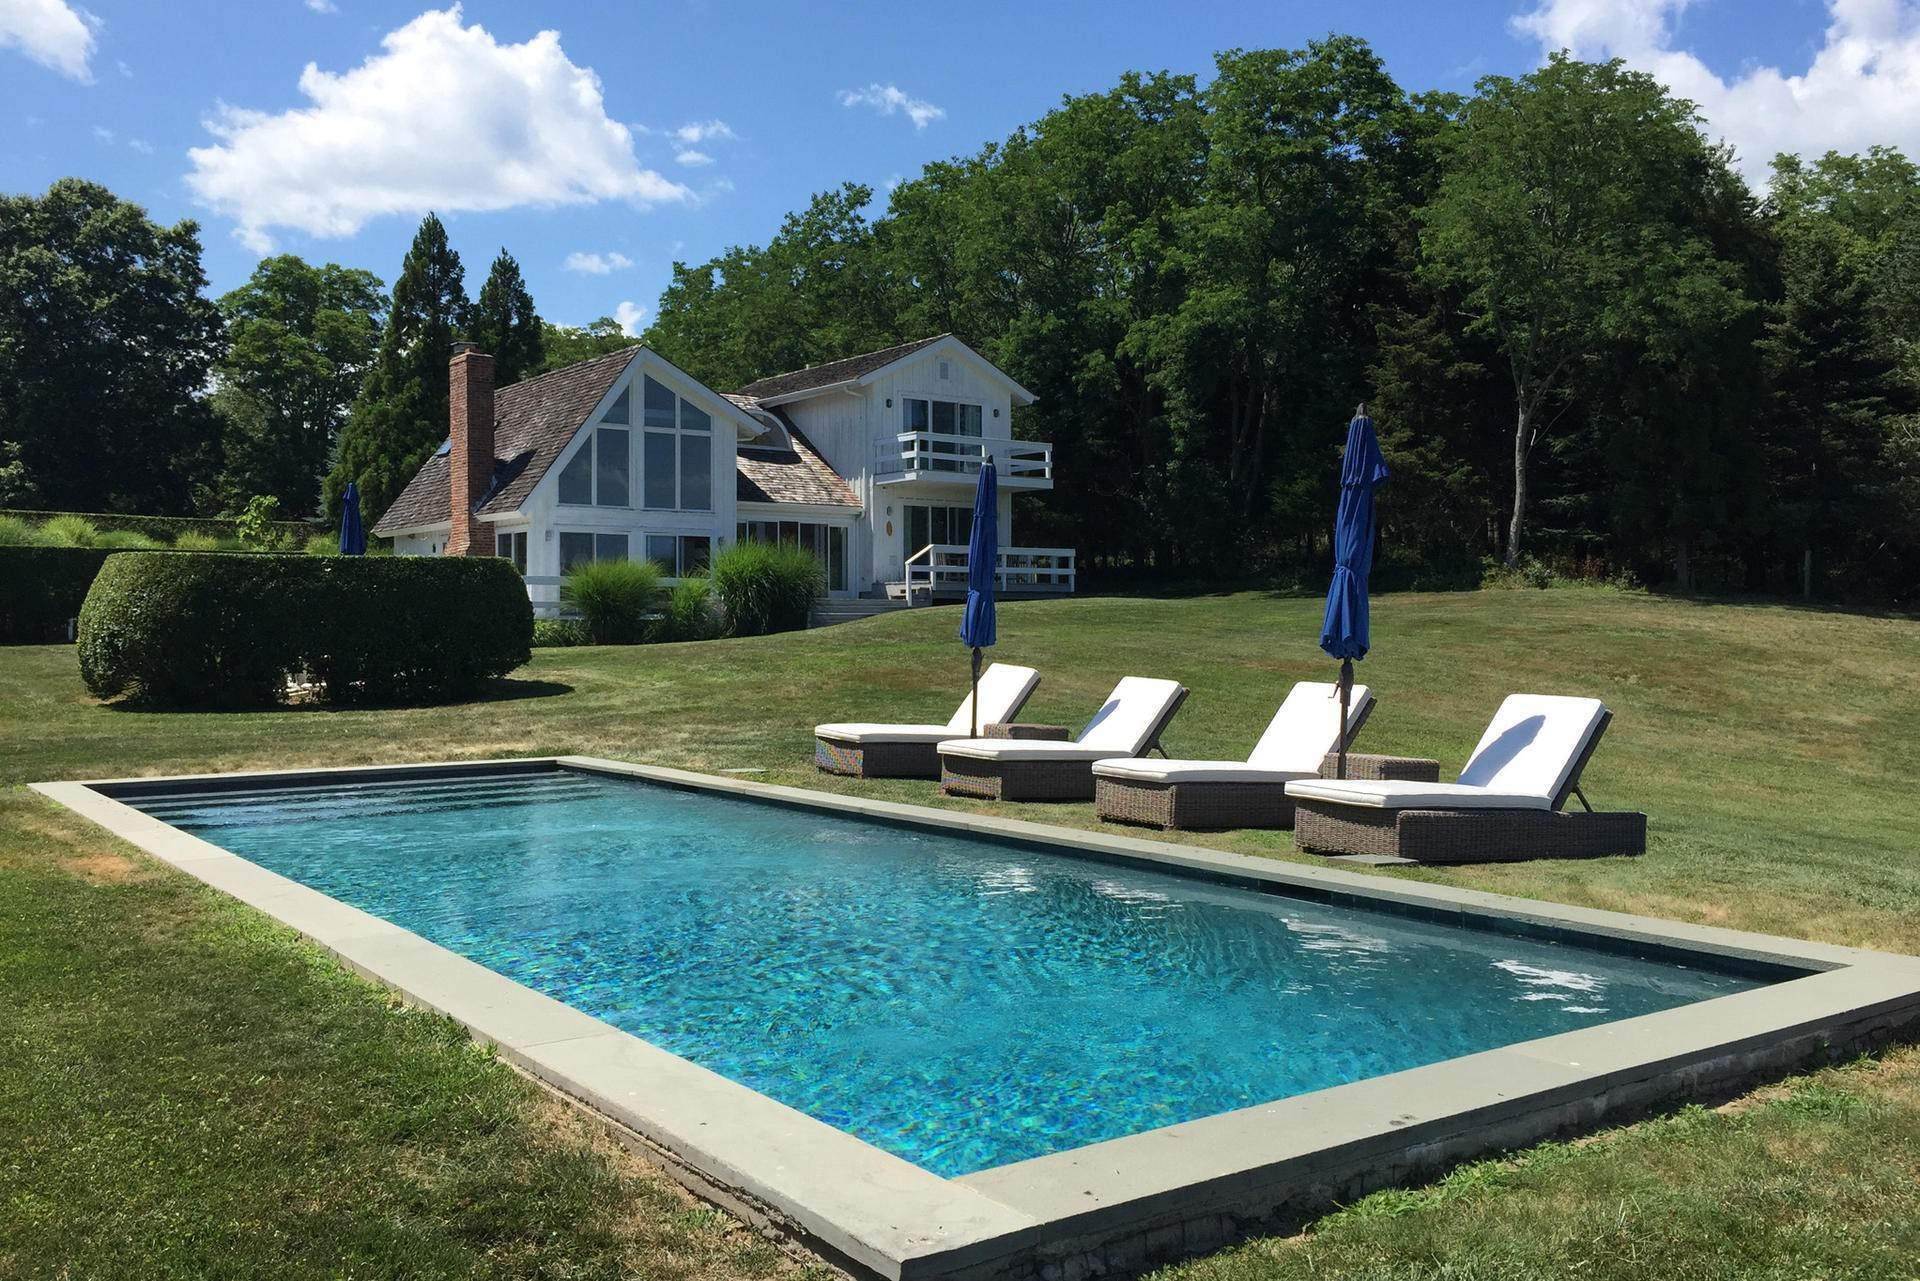 Single Family Home at Fabulous Shelter Island Waterview With Pool Shelter Island Heights, NY 11964